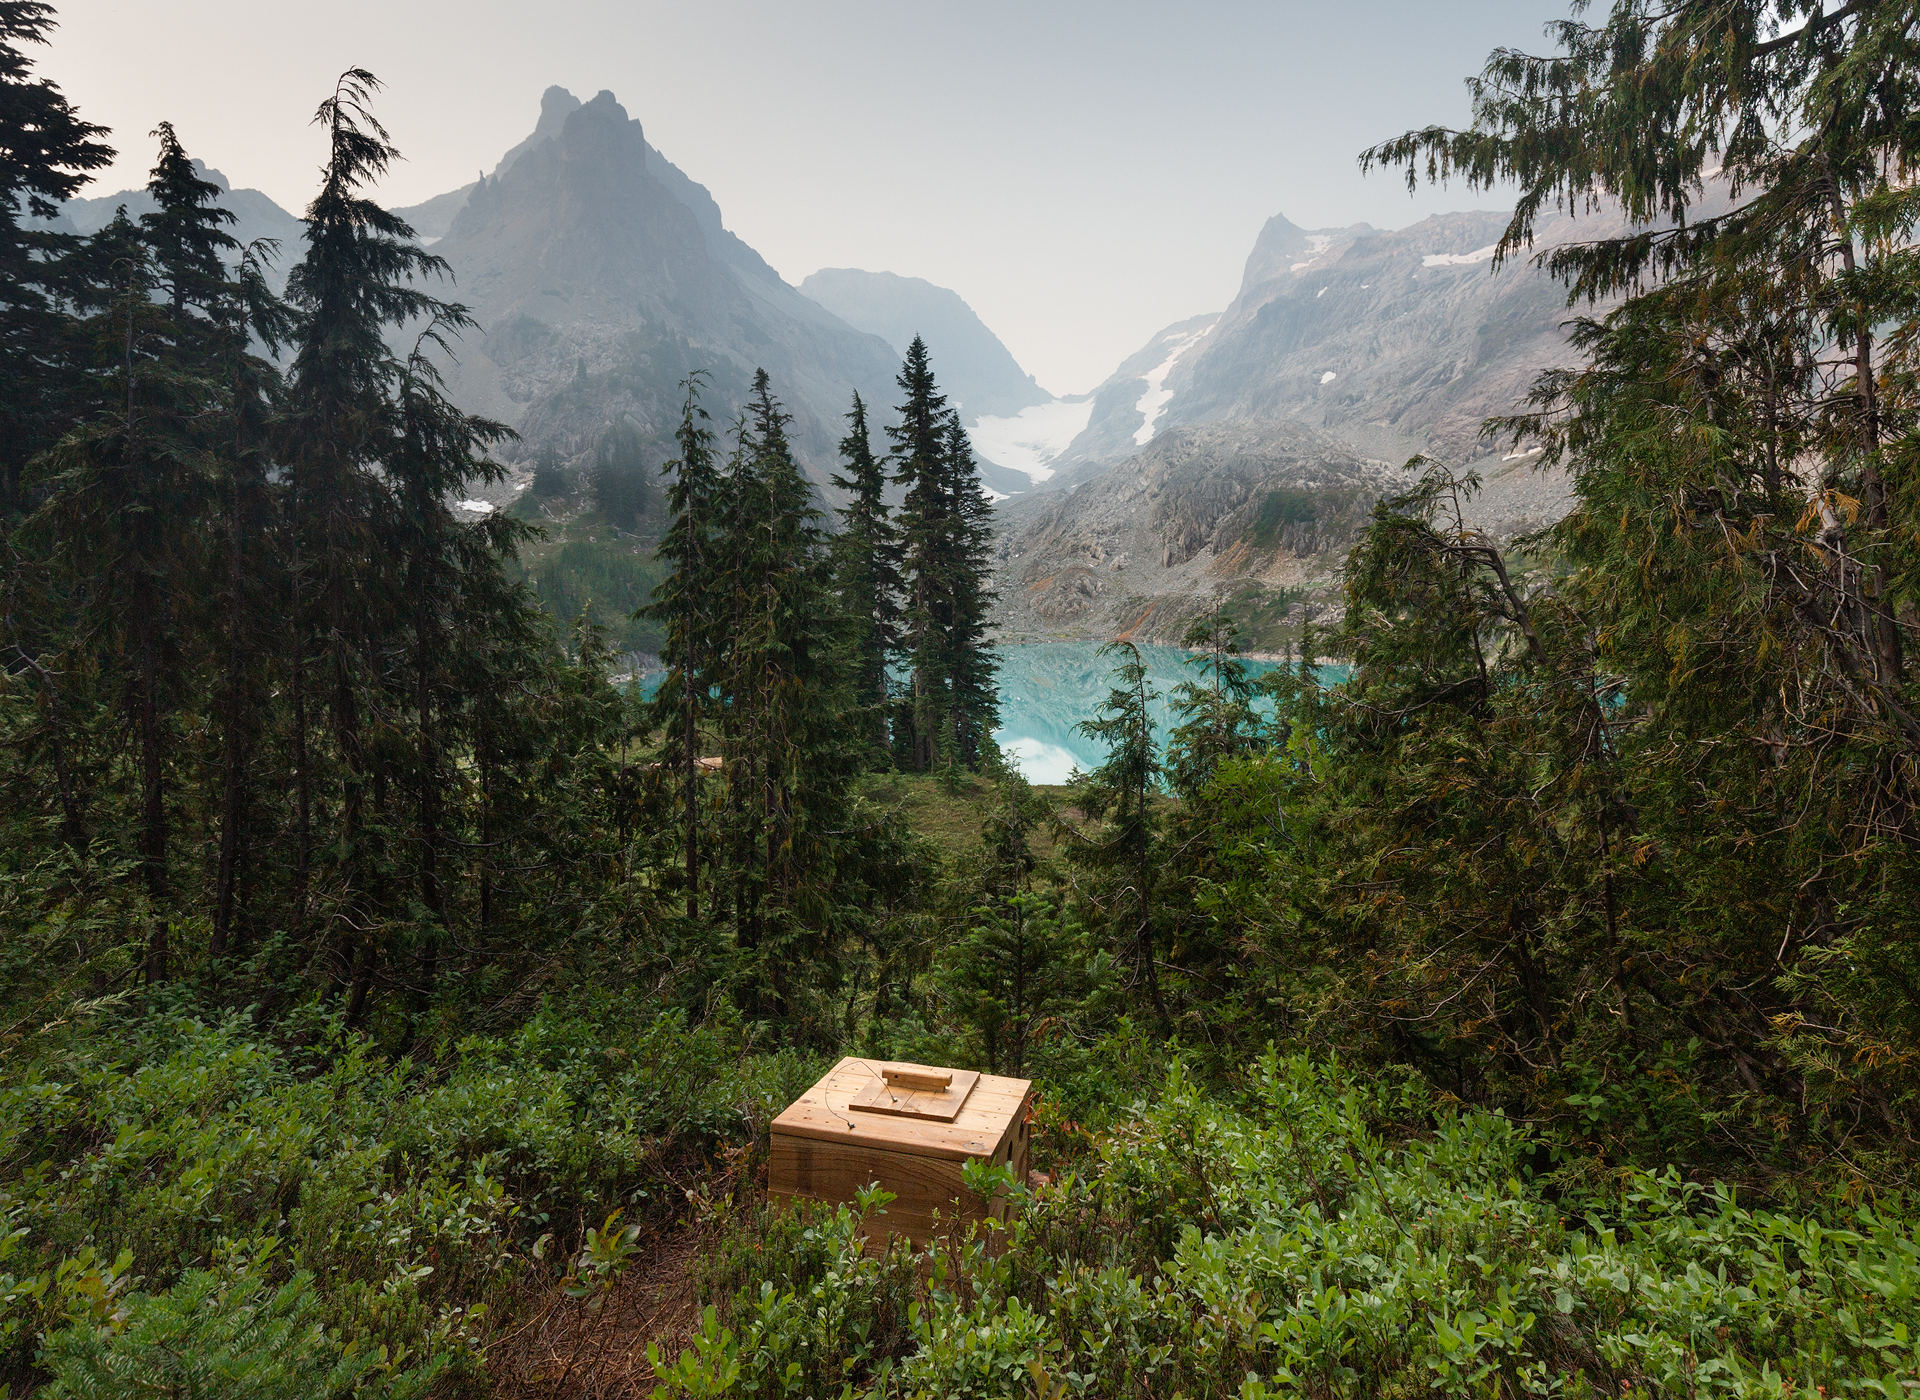 A backcountry toilet with a view (Alpine Lakes Wilderness)